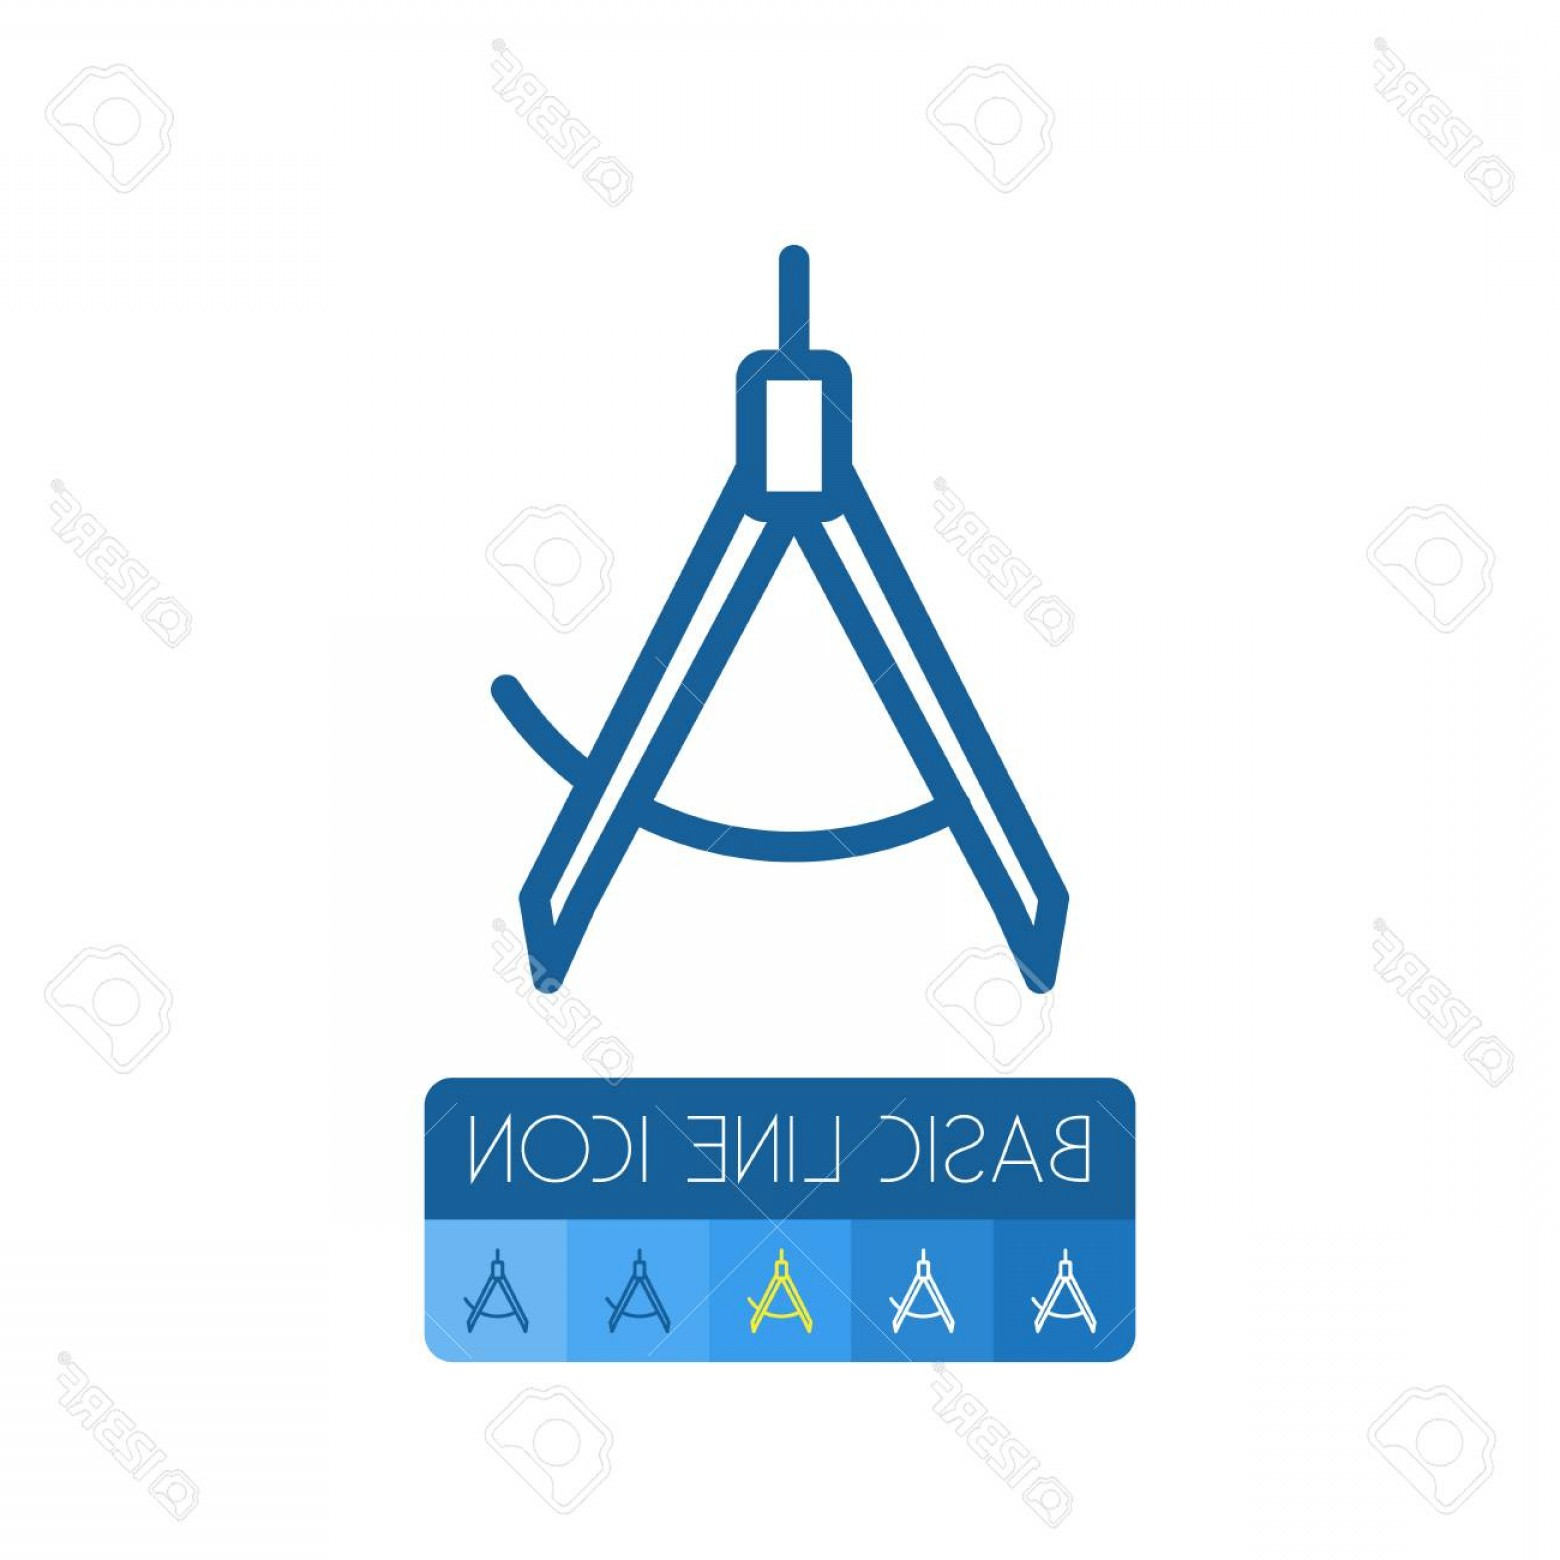 Navigation Vector: Photostock Vector Isolated Compass Outline Navigation Vector Element Can Be Used For Compass Direction Navigation Desi